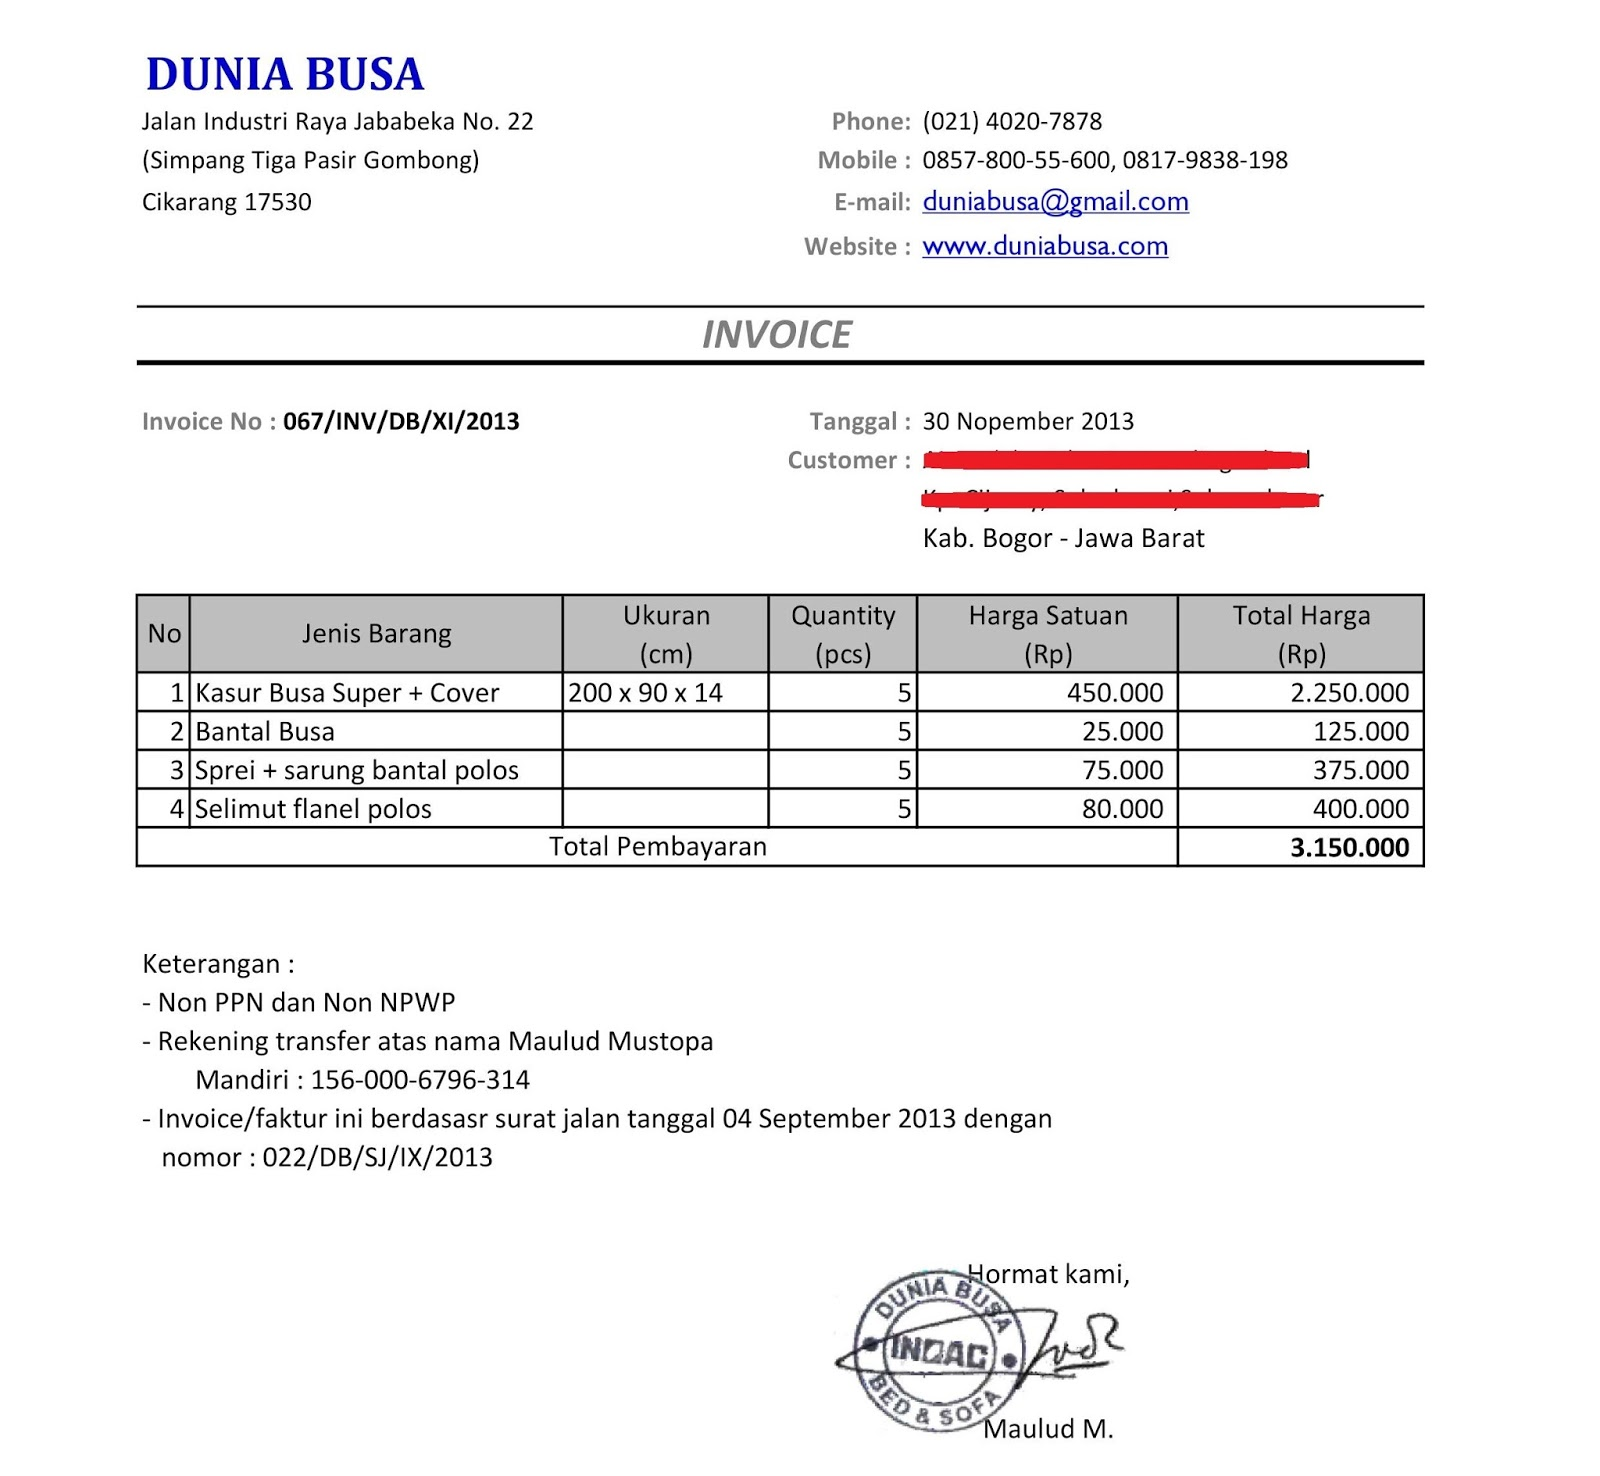 Centralasianshepherdus  Unusual Free Invoice Online  Create Invoice Online  Invoice Template  With Glamorous Contoh Format Invoice Atau Surat Tagihan  Brankas Arsip  Free Invoice Online With Breathtaking Tax Invoice Template Free Also Spreadsheet Invoice In Addition Invoice Validation And Send Free Invoice As Well As Google Documents Invoice Template Additionally Payment Terms For Invoices From Sklepco With Centralasianshepherdus  Glamorous Free Invoice Online  Create Invoice Online  Invoice Template  With Breathtaking Contoh Format Invoice Atau Surat Tagihan  Brankas Arsip  Free Invoice Online And Unusual Tax Invoice Template Free Also Spreadsheet Invoice In Addition Invoice Validation From Sklepco